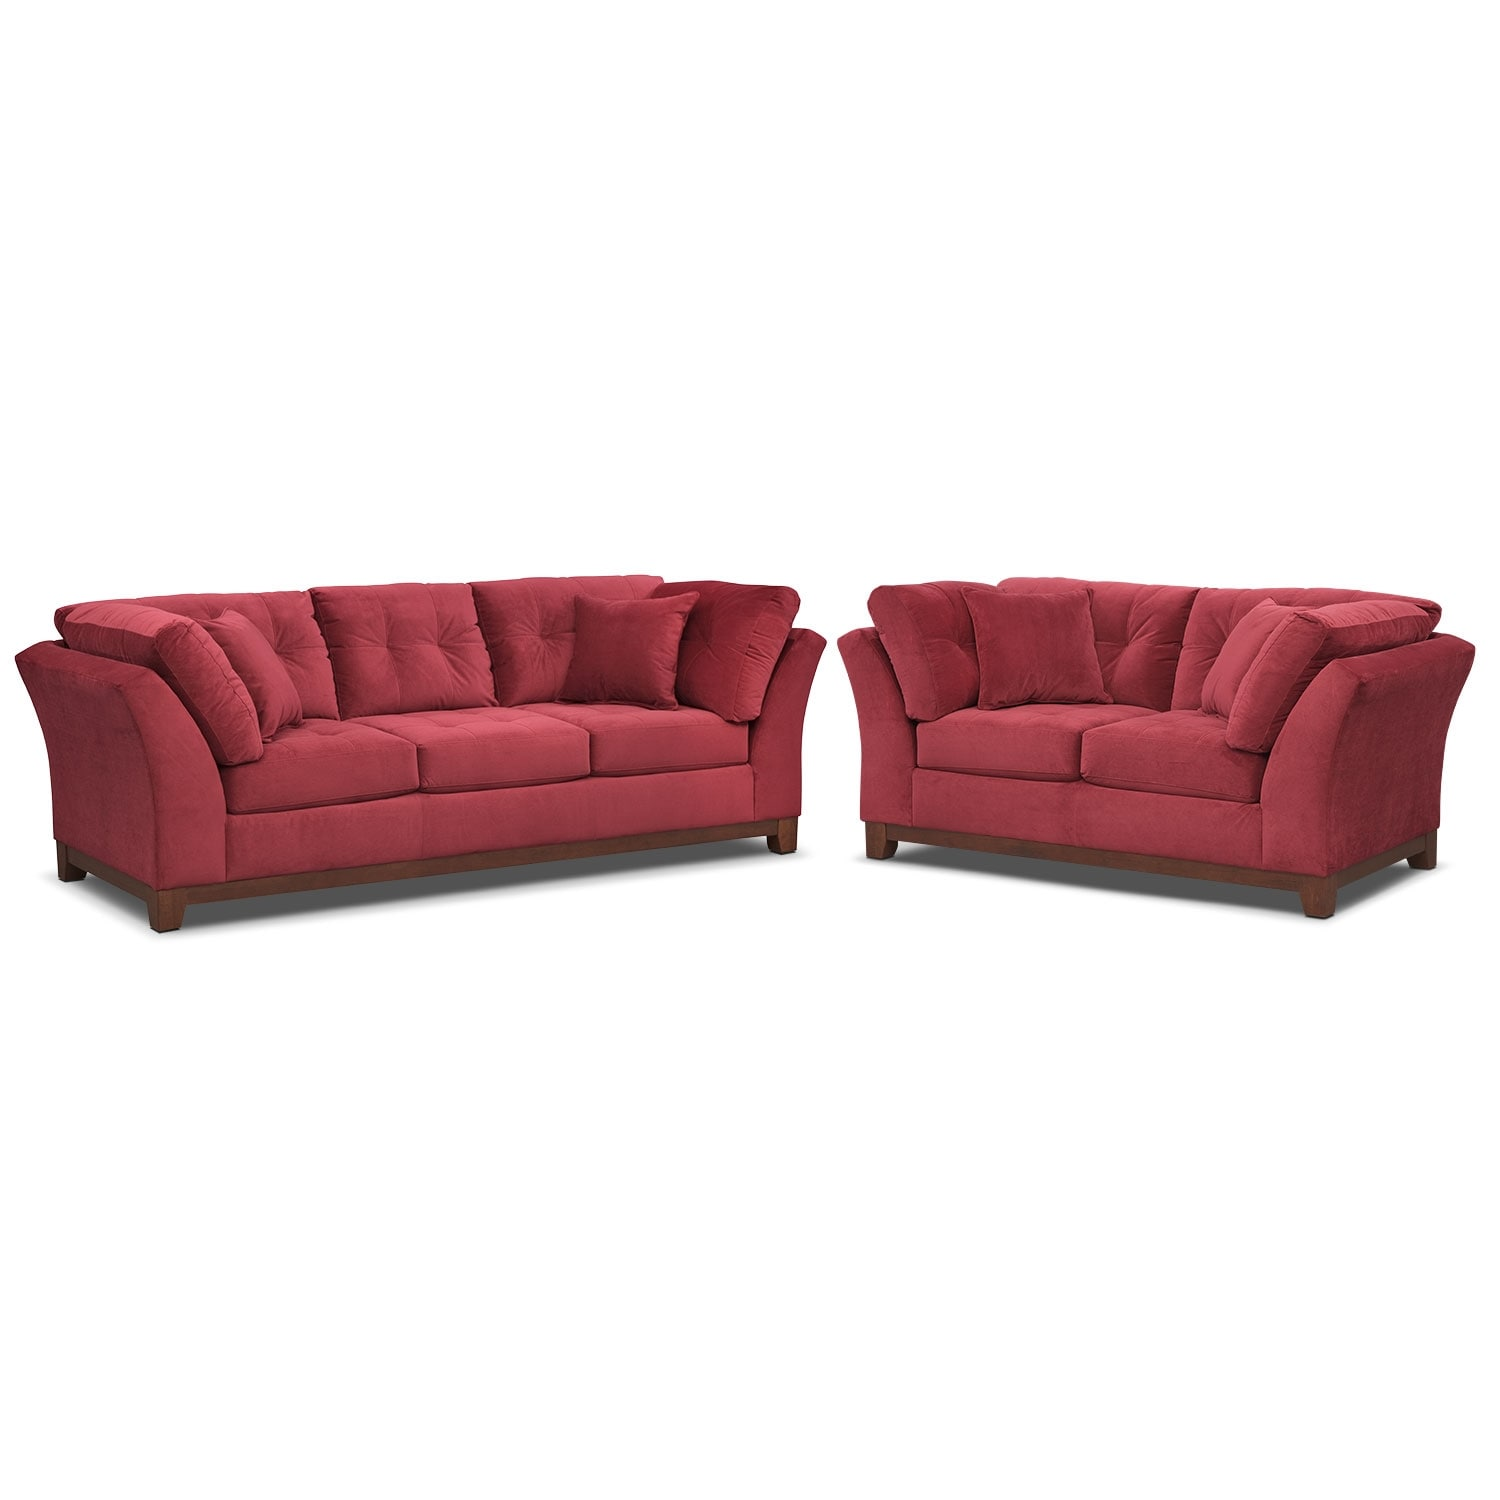 Living Room Furniture - Solace Poppy 2 Pc. Living Room